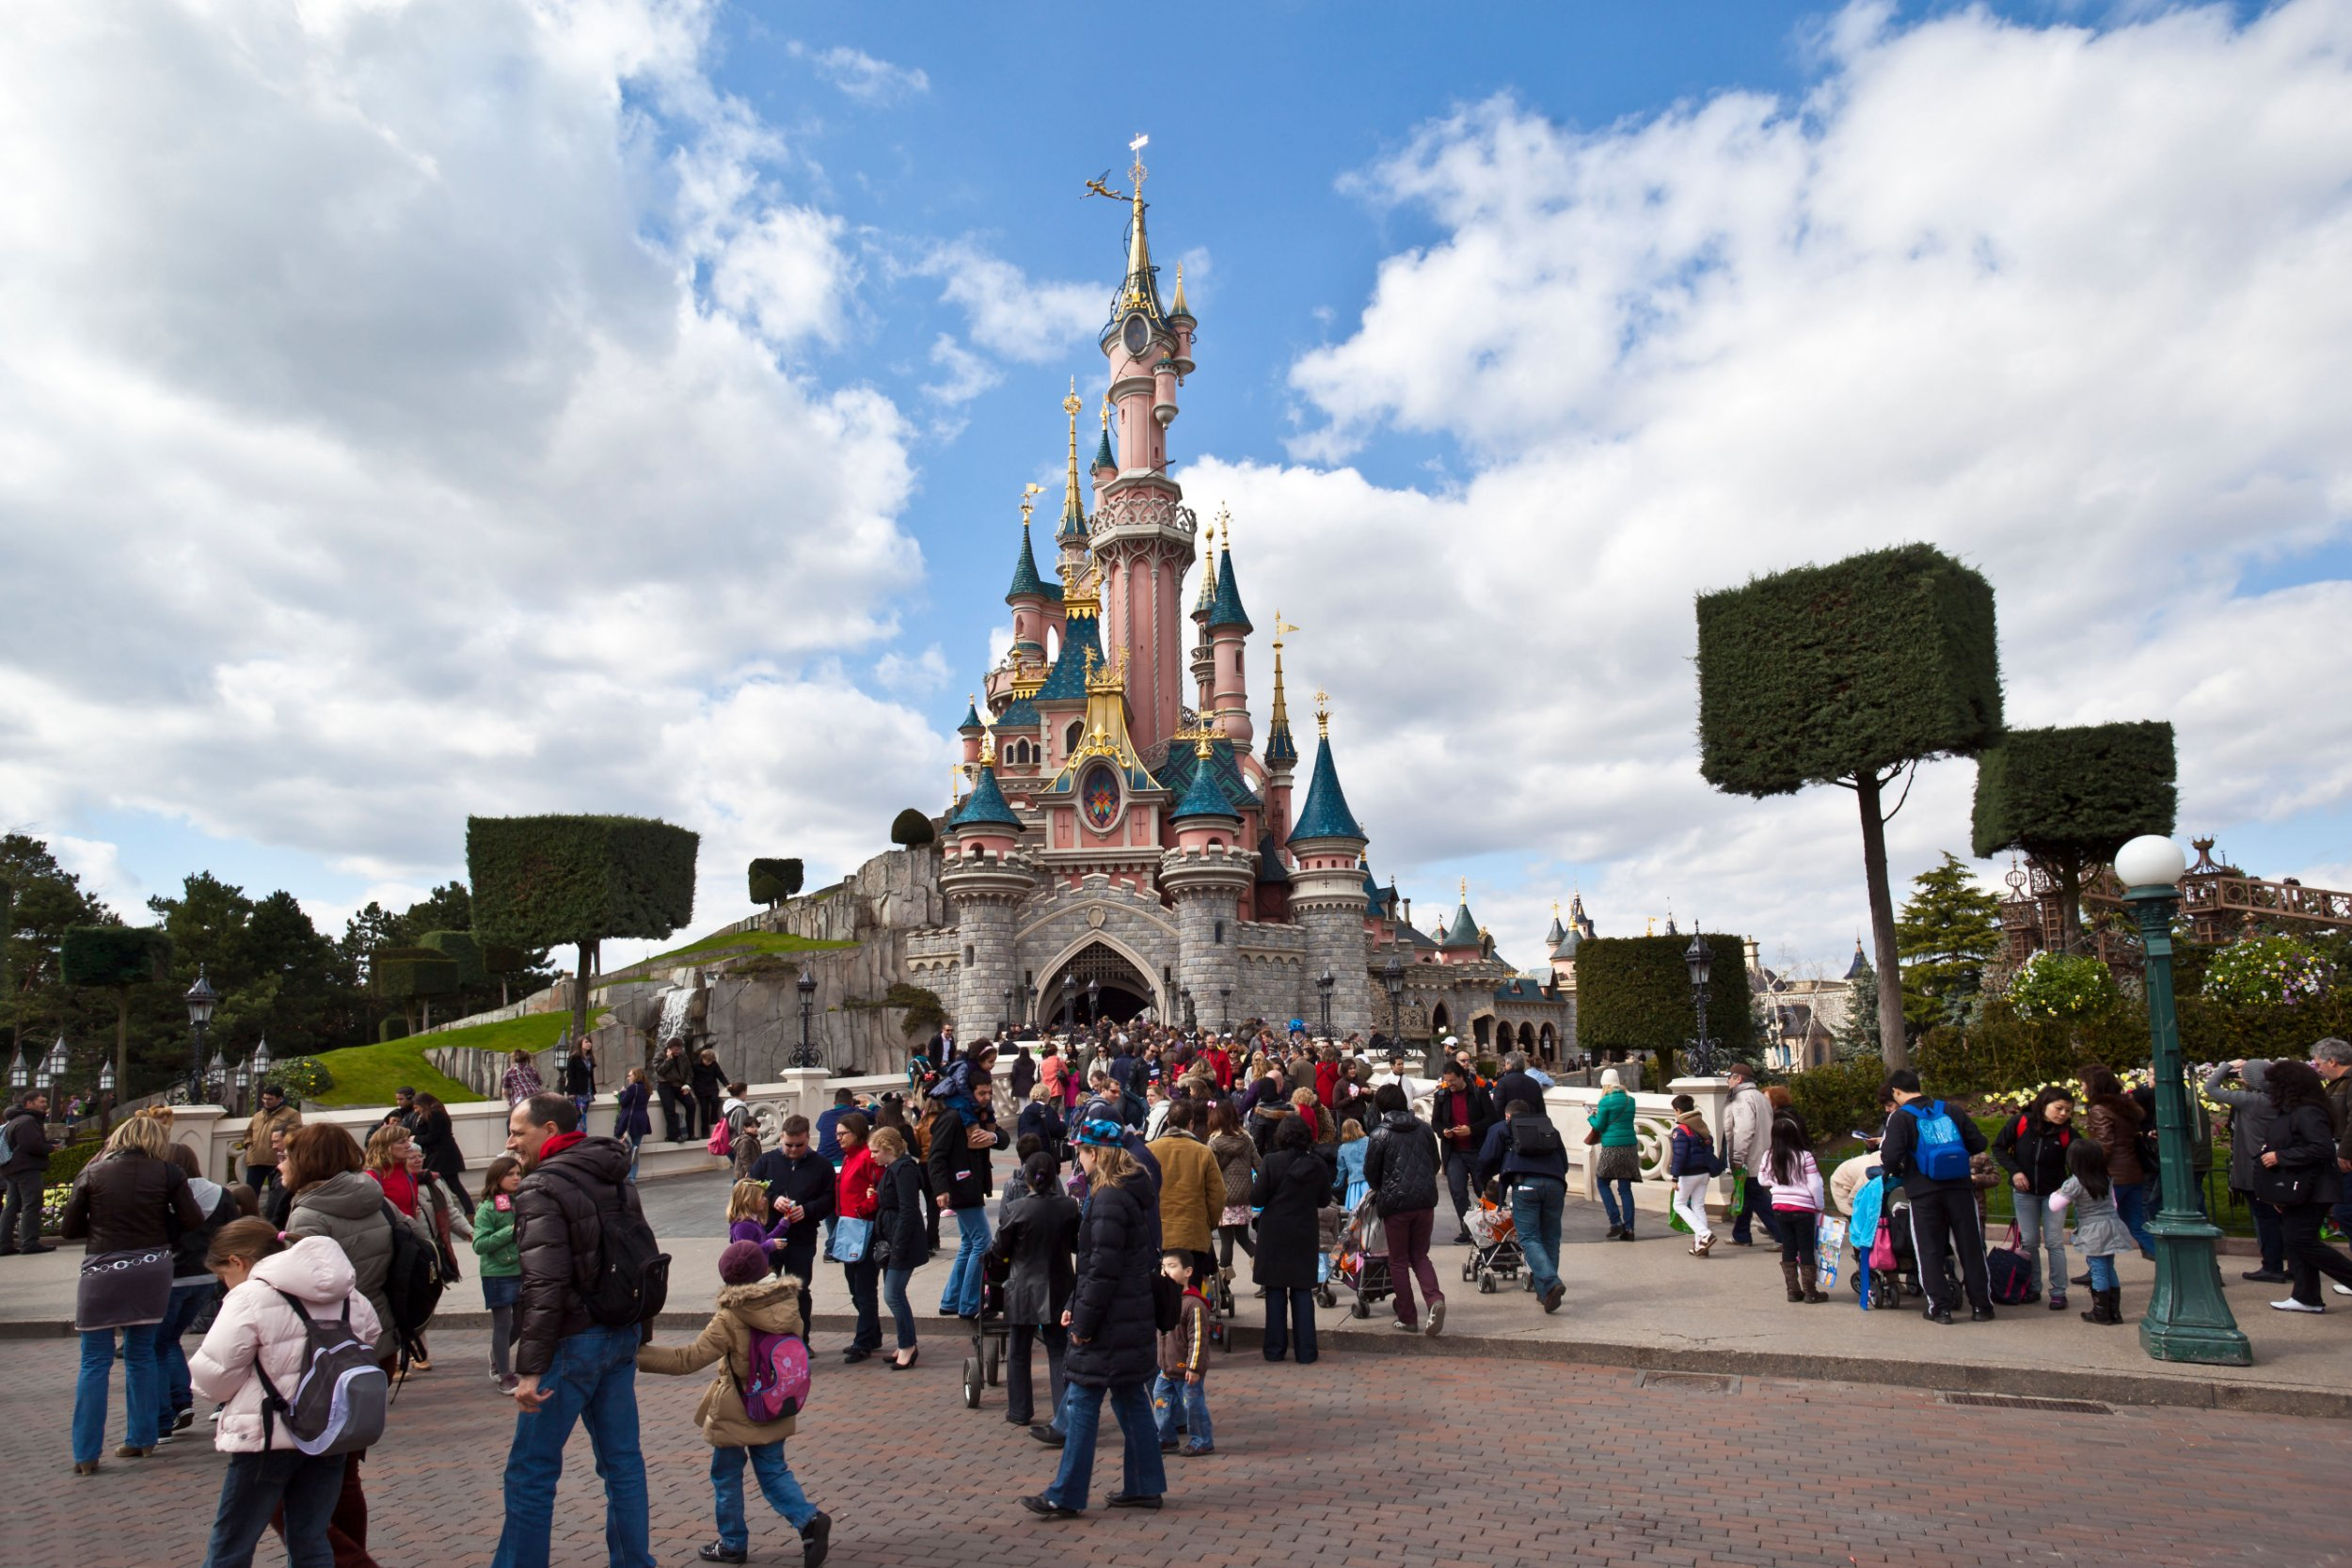 C22TFN Cinderella's castle at Disneyland Paris, France